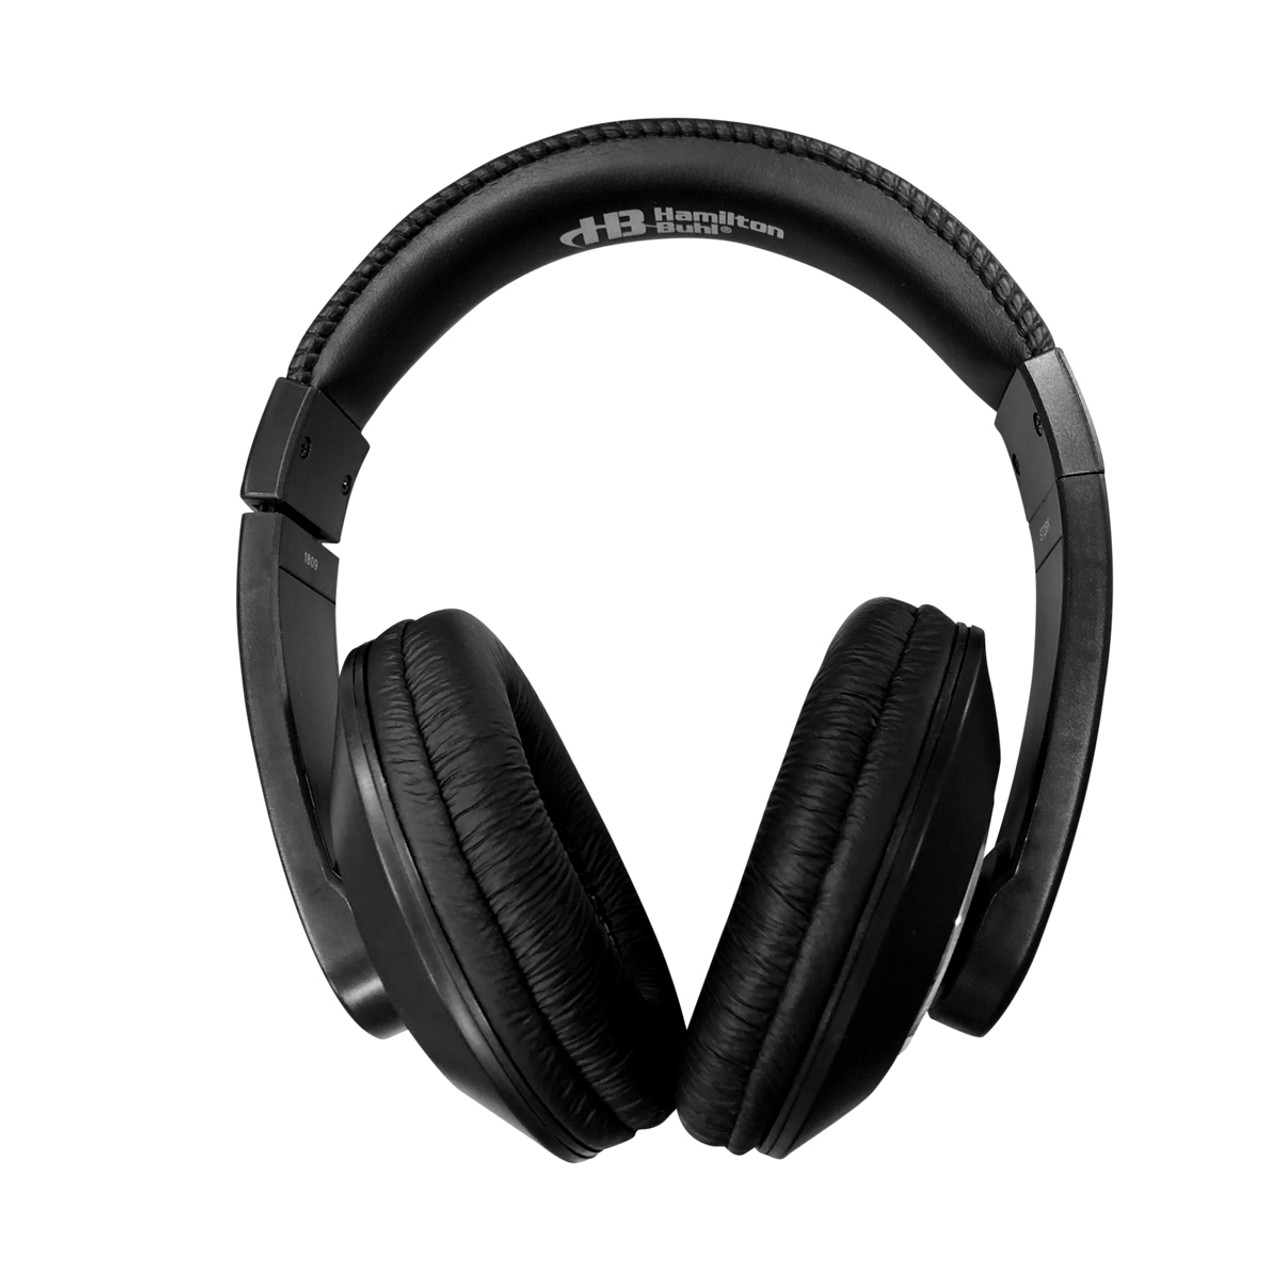 Smart-Trek  Deluxe Stereo Headset with In-Line Volume Control and USB Plug